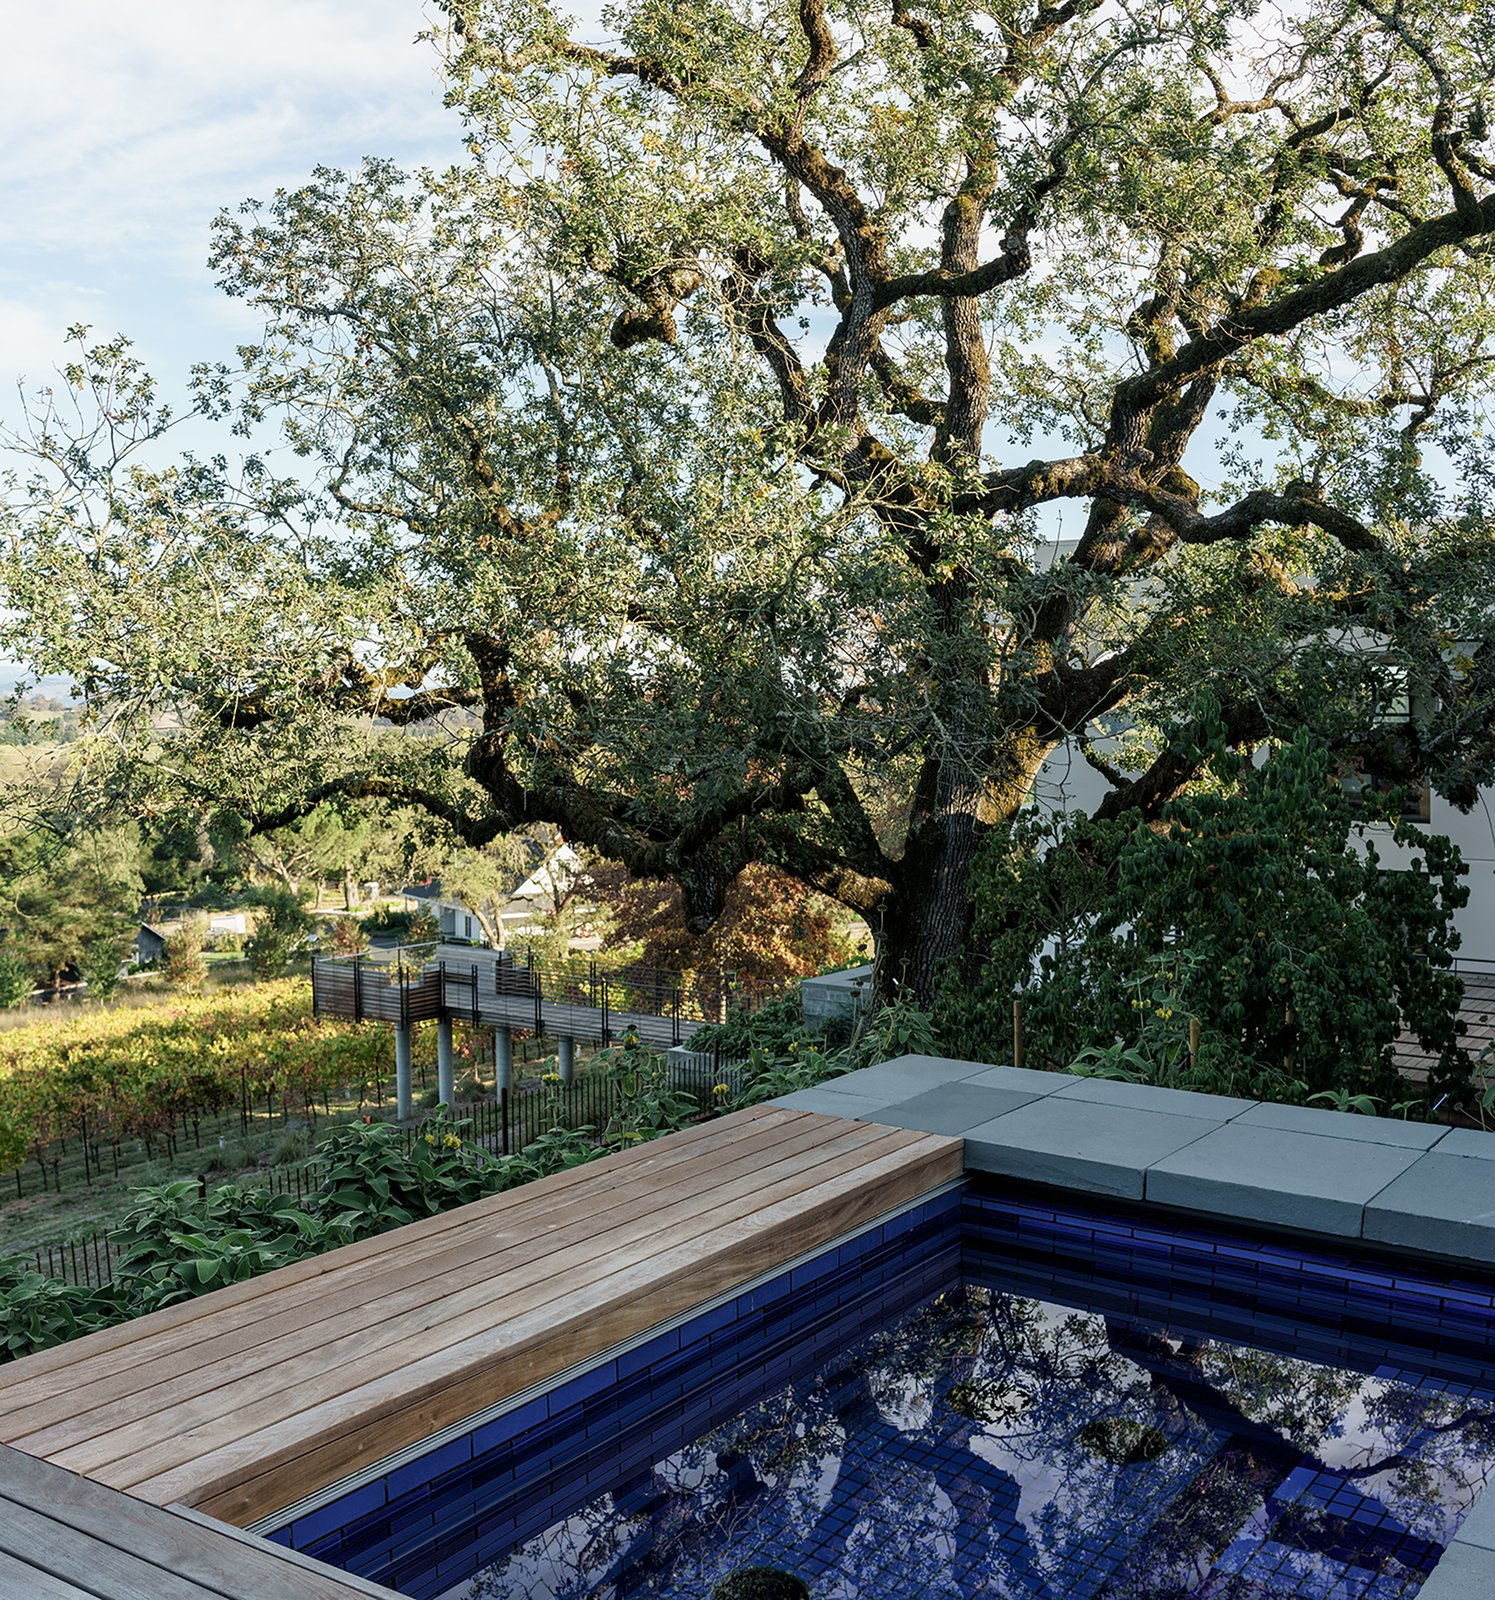 Outdoor, Decking Patio, Porch, Deck, Trees, Small Pools, Tubs, Shower, Stone Patio, Porch, Deck, and Shrubs Master bedroom courtyard spa sited above the vineyard  Hilltop Haven by Randy Thueme Design